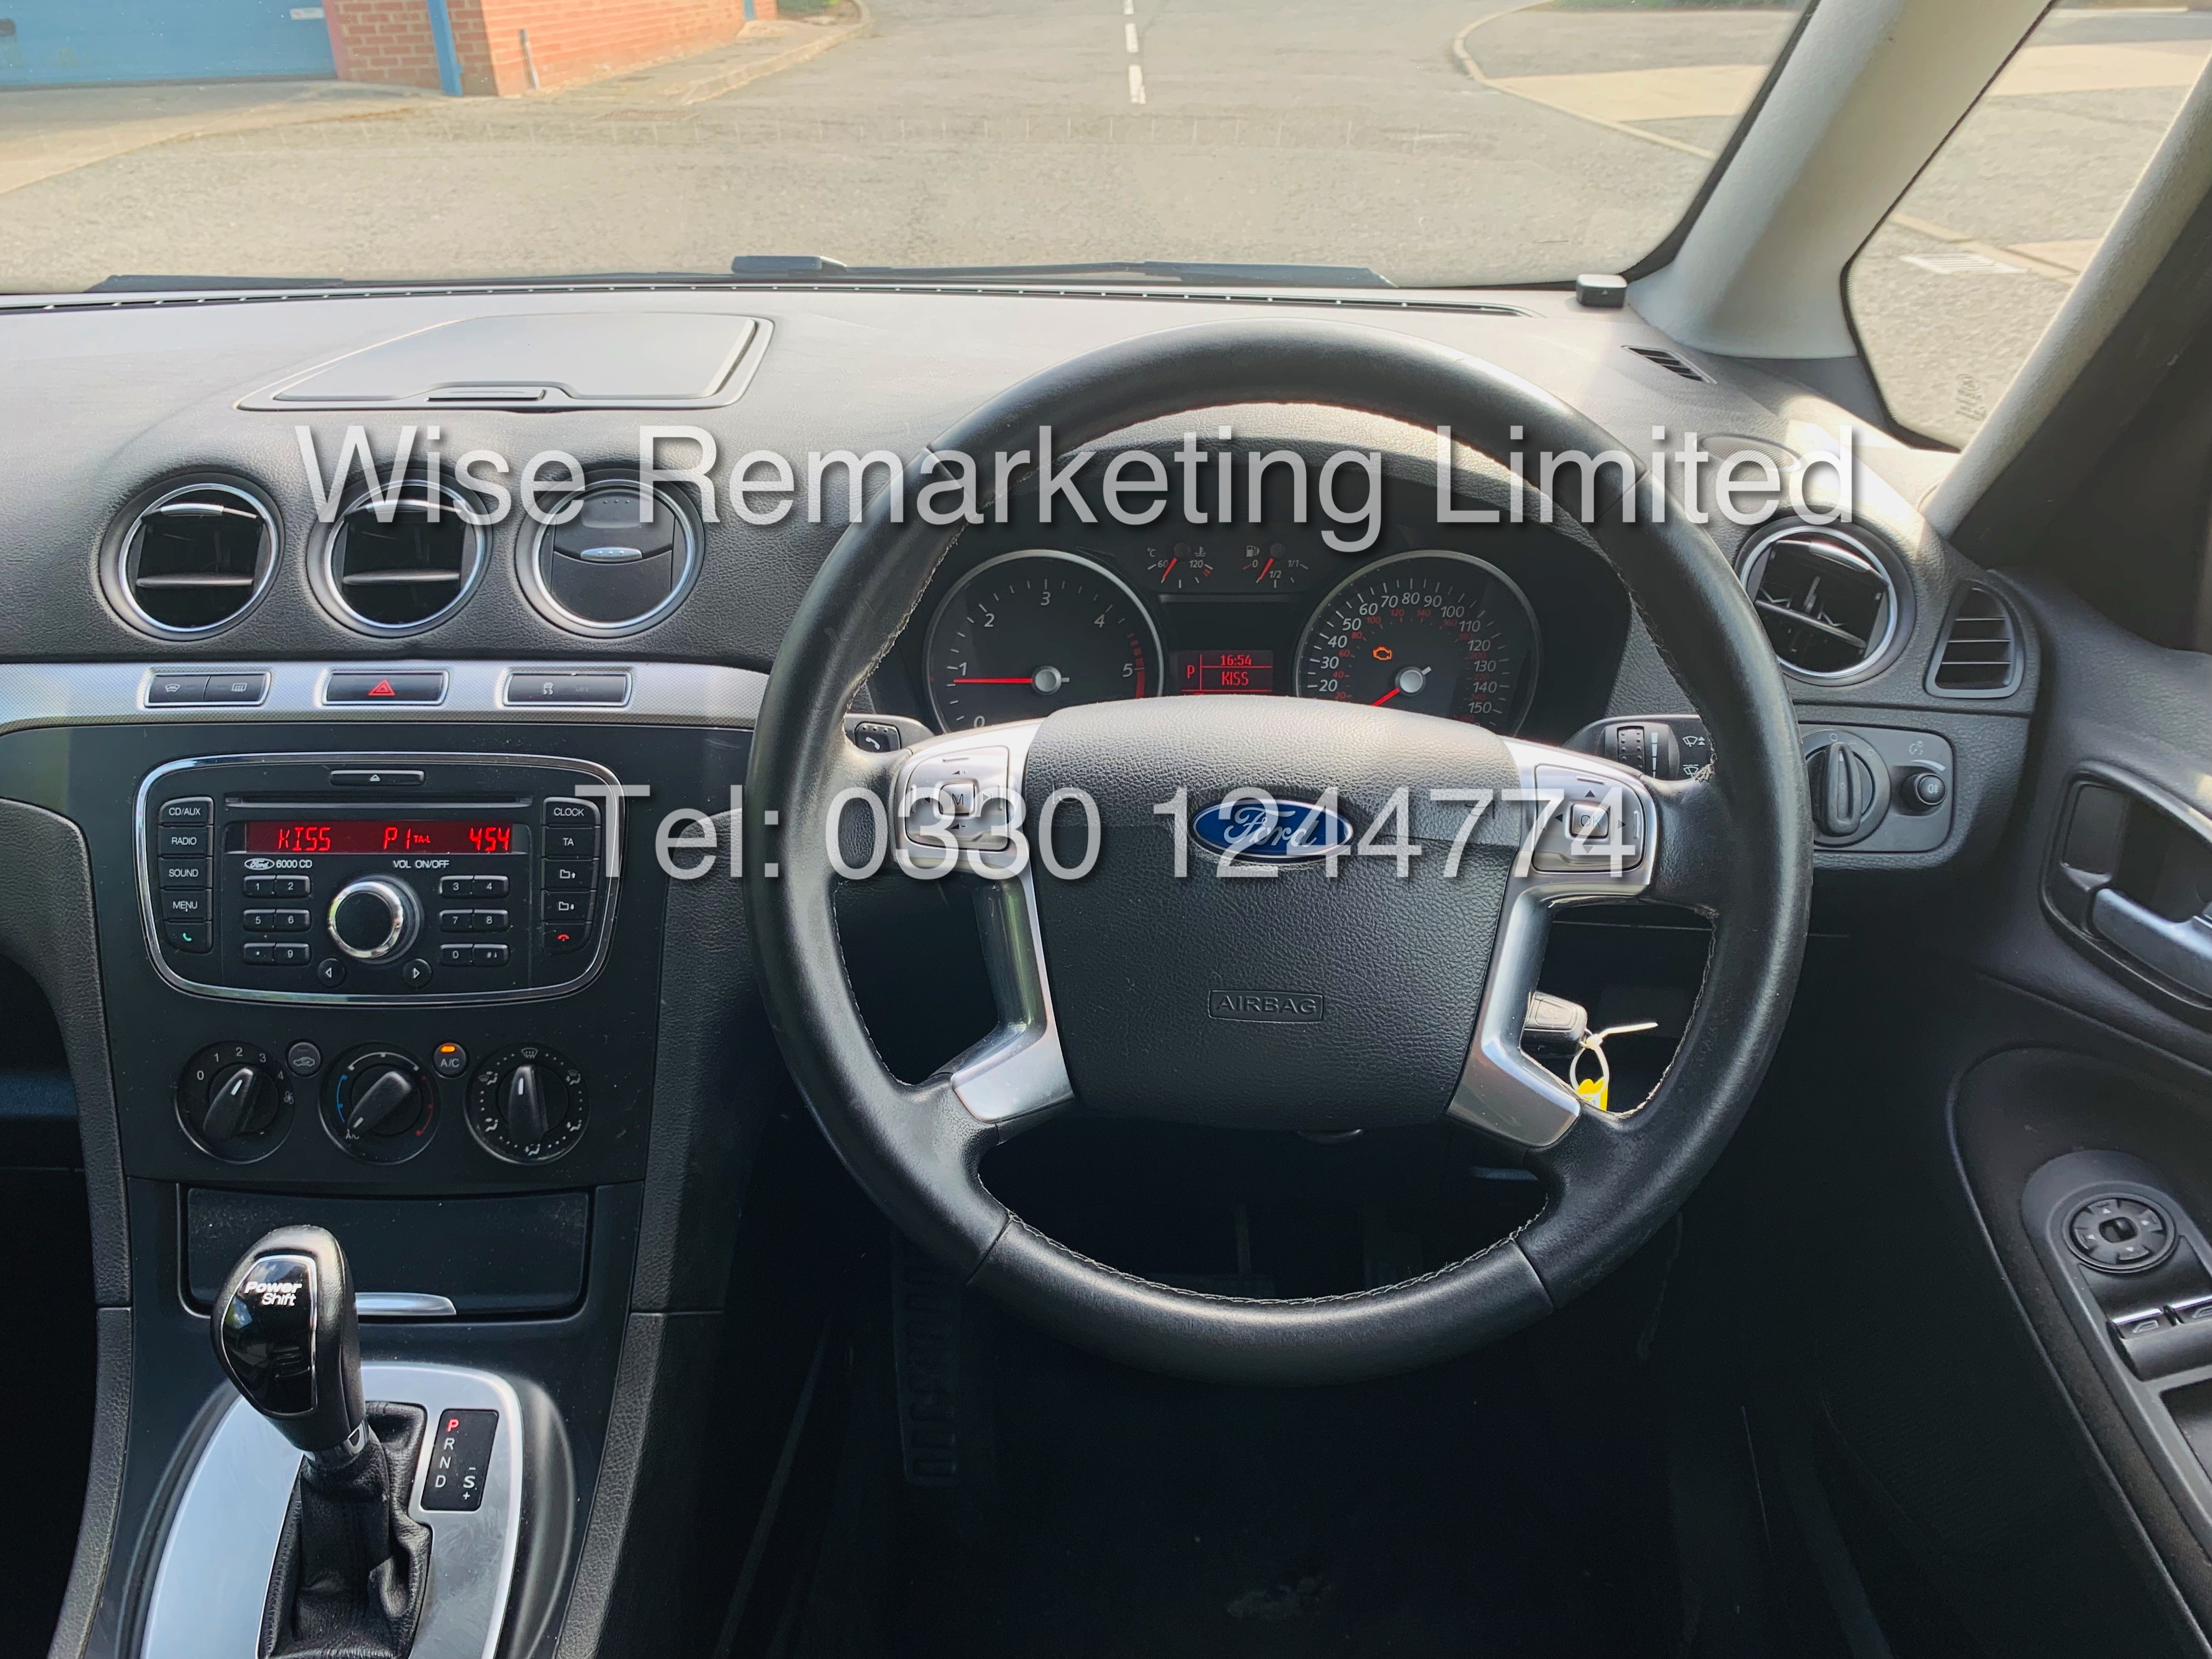 FORD GALAXY ZETEC 2.0L TDCI AUTO 7 SEATER MPV 63 REG *1 OWNER* - Image 18 of 20